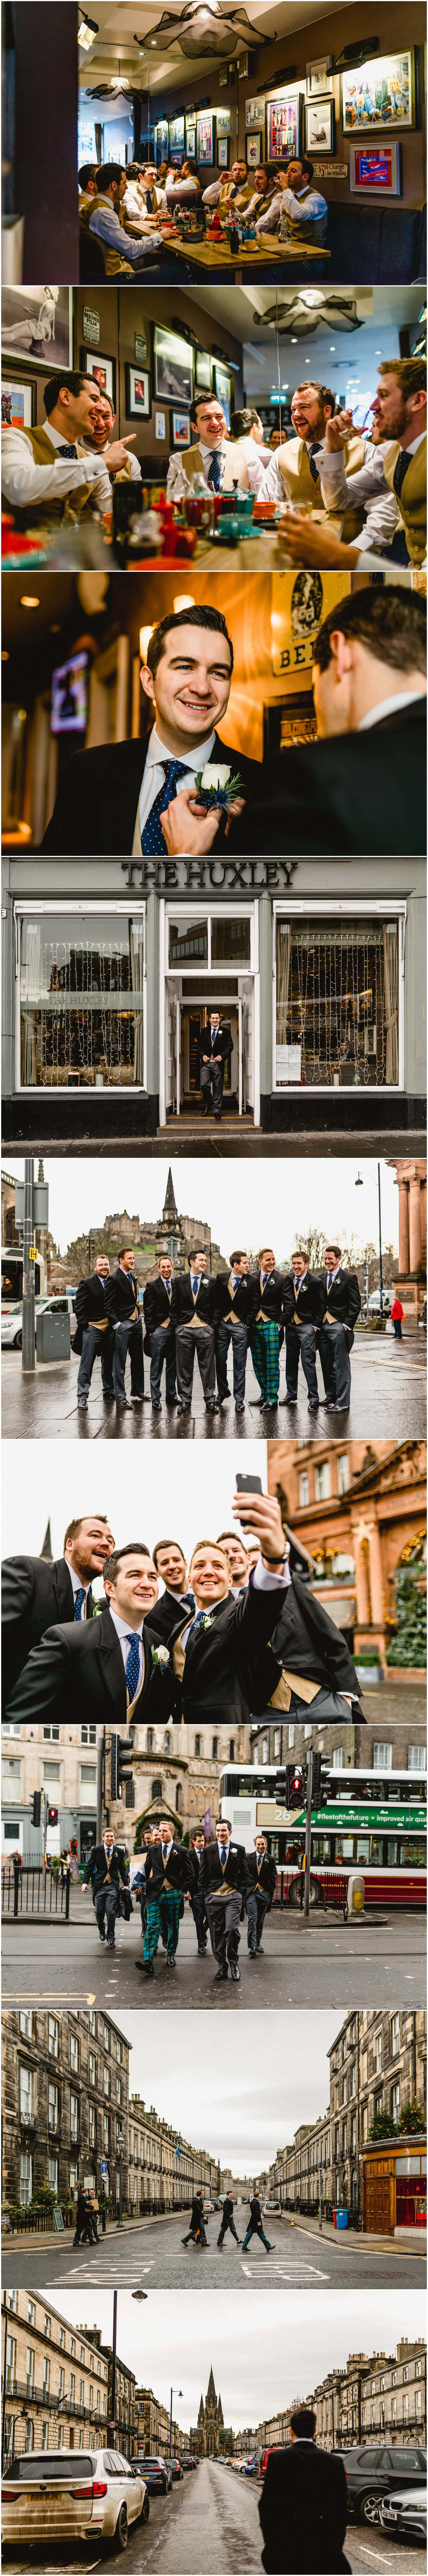 groom photos before the wedding ceremony in The Huxley Pub in Edinburgh and walking along the streets of Edinburgh towards the church for a winters day ceremony